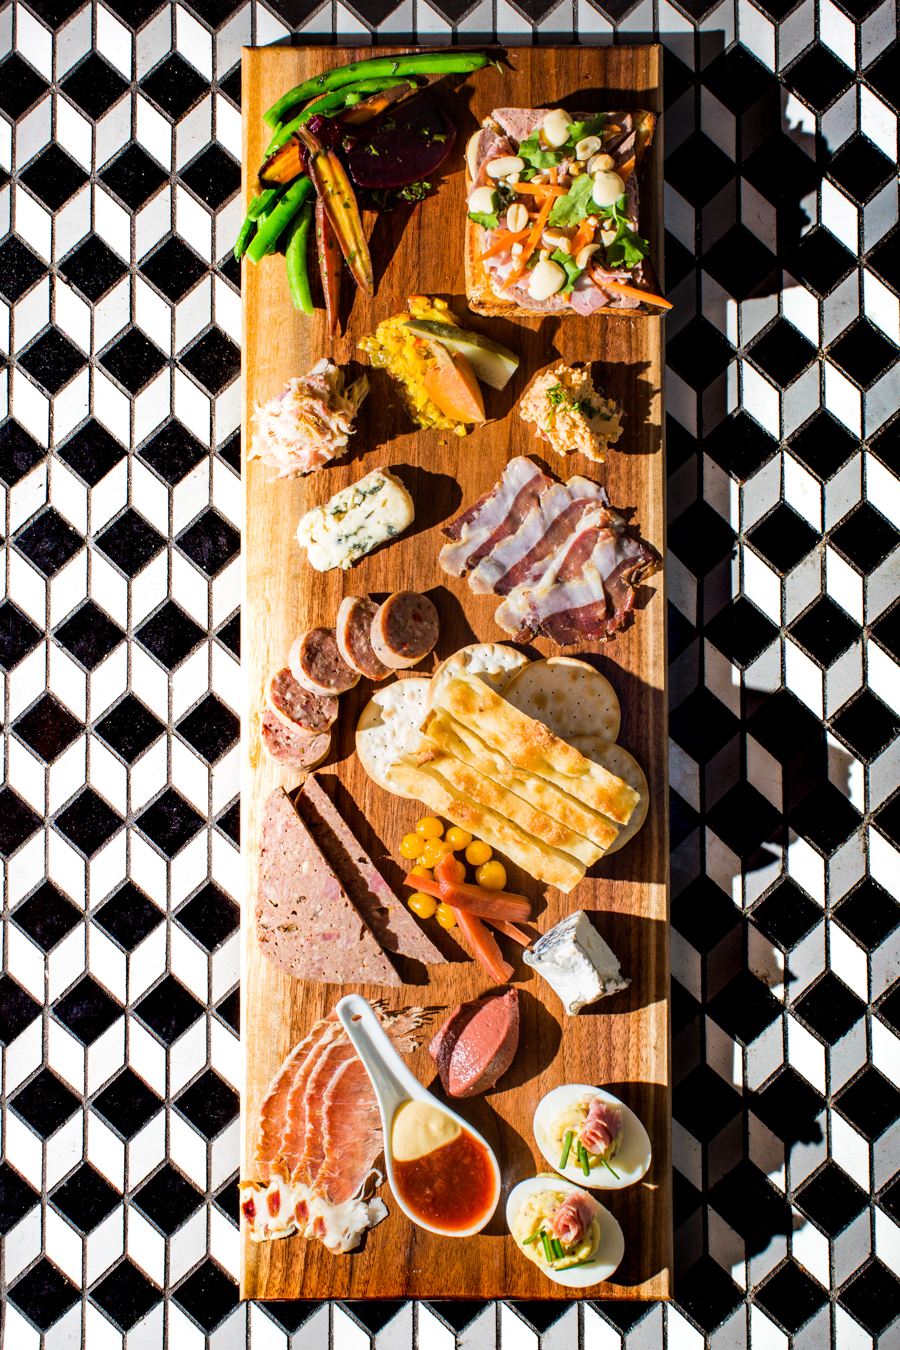 Justin Tsucalas – Culinary - Graine de Photographe Sugarvale : Chef's Choice Charcuterie Board prepared by Lori Yanke